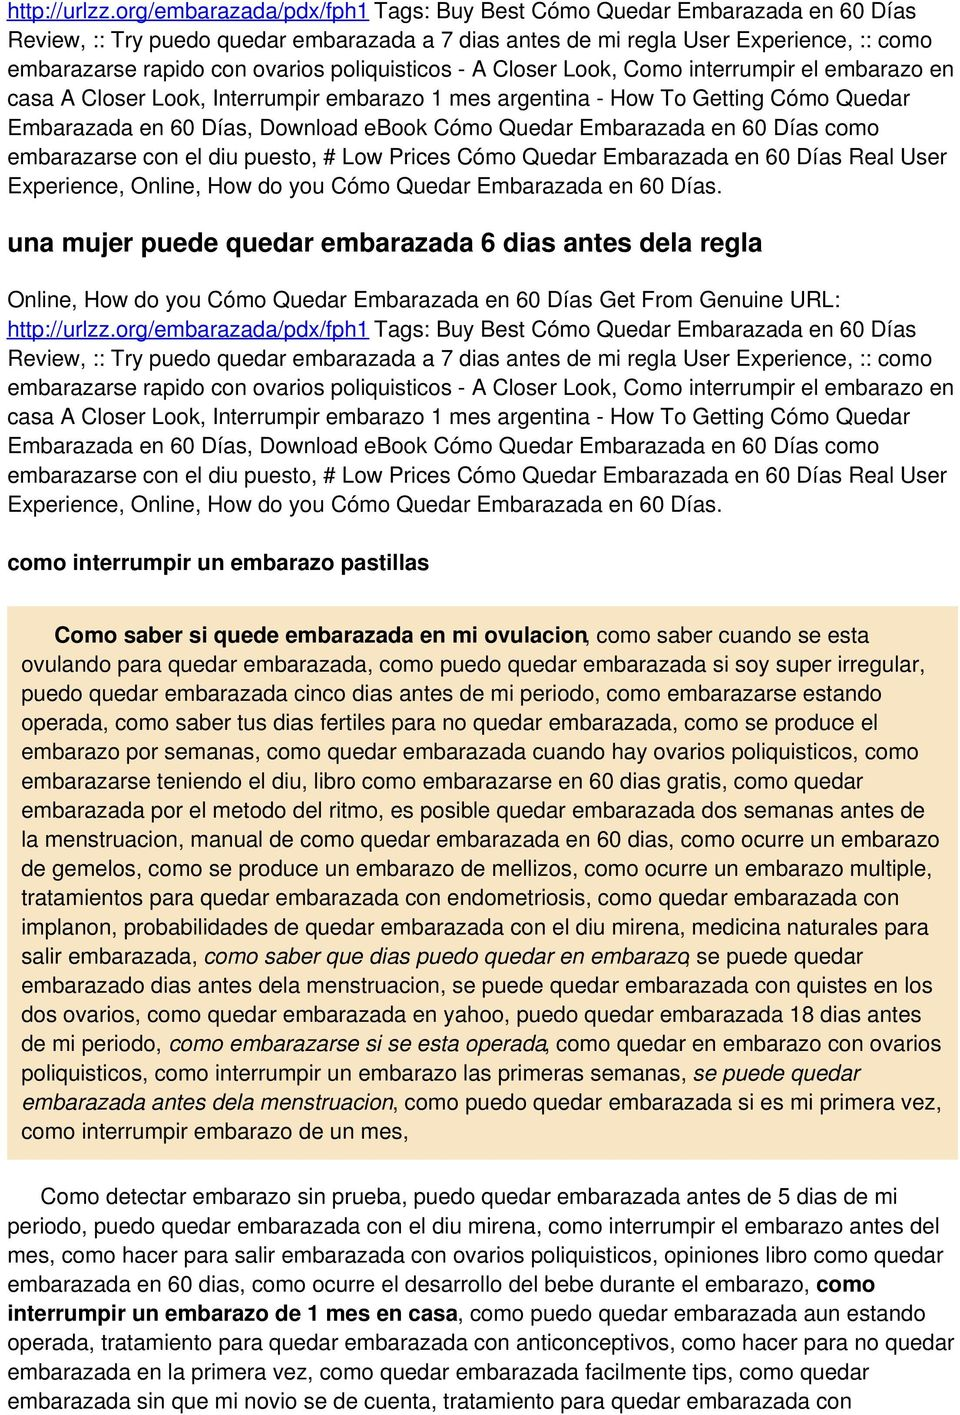 poliquisticos - A Closer Look, Como interrumpir el embarazo en casa A Closer Look, Interrumpir embarazo 1 mes argentina - How To Getting Cómo Quedar Embarazada en 60 Días, Download ebook Cómo Quedar